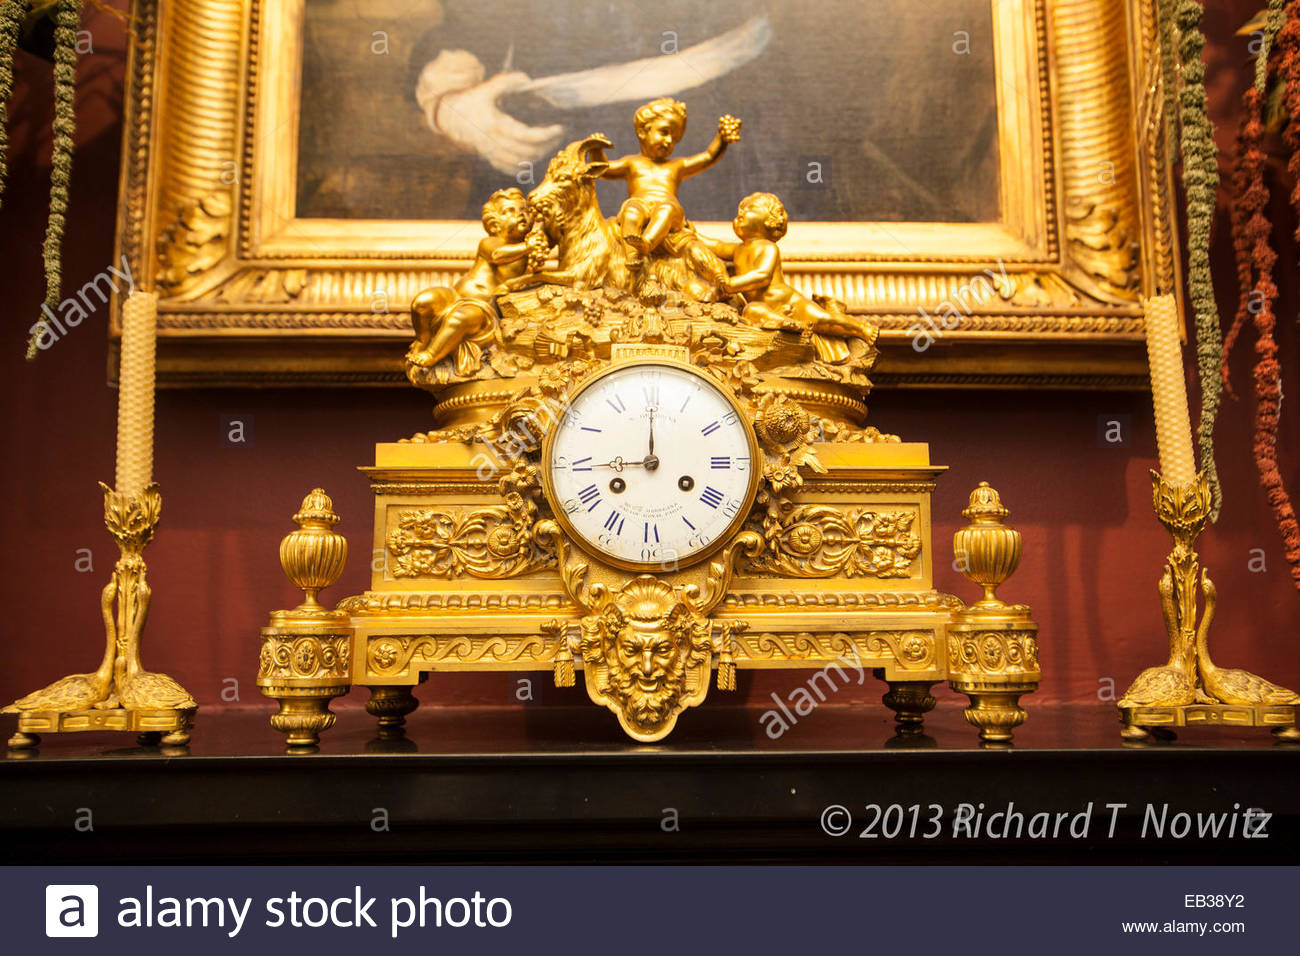 Antiques french clock that belonged to royalty decorates the mantle inside the historic house. Stock Photo